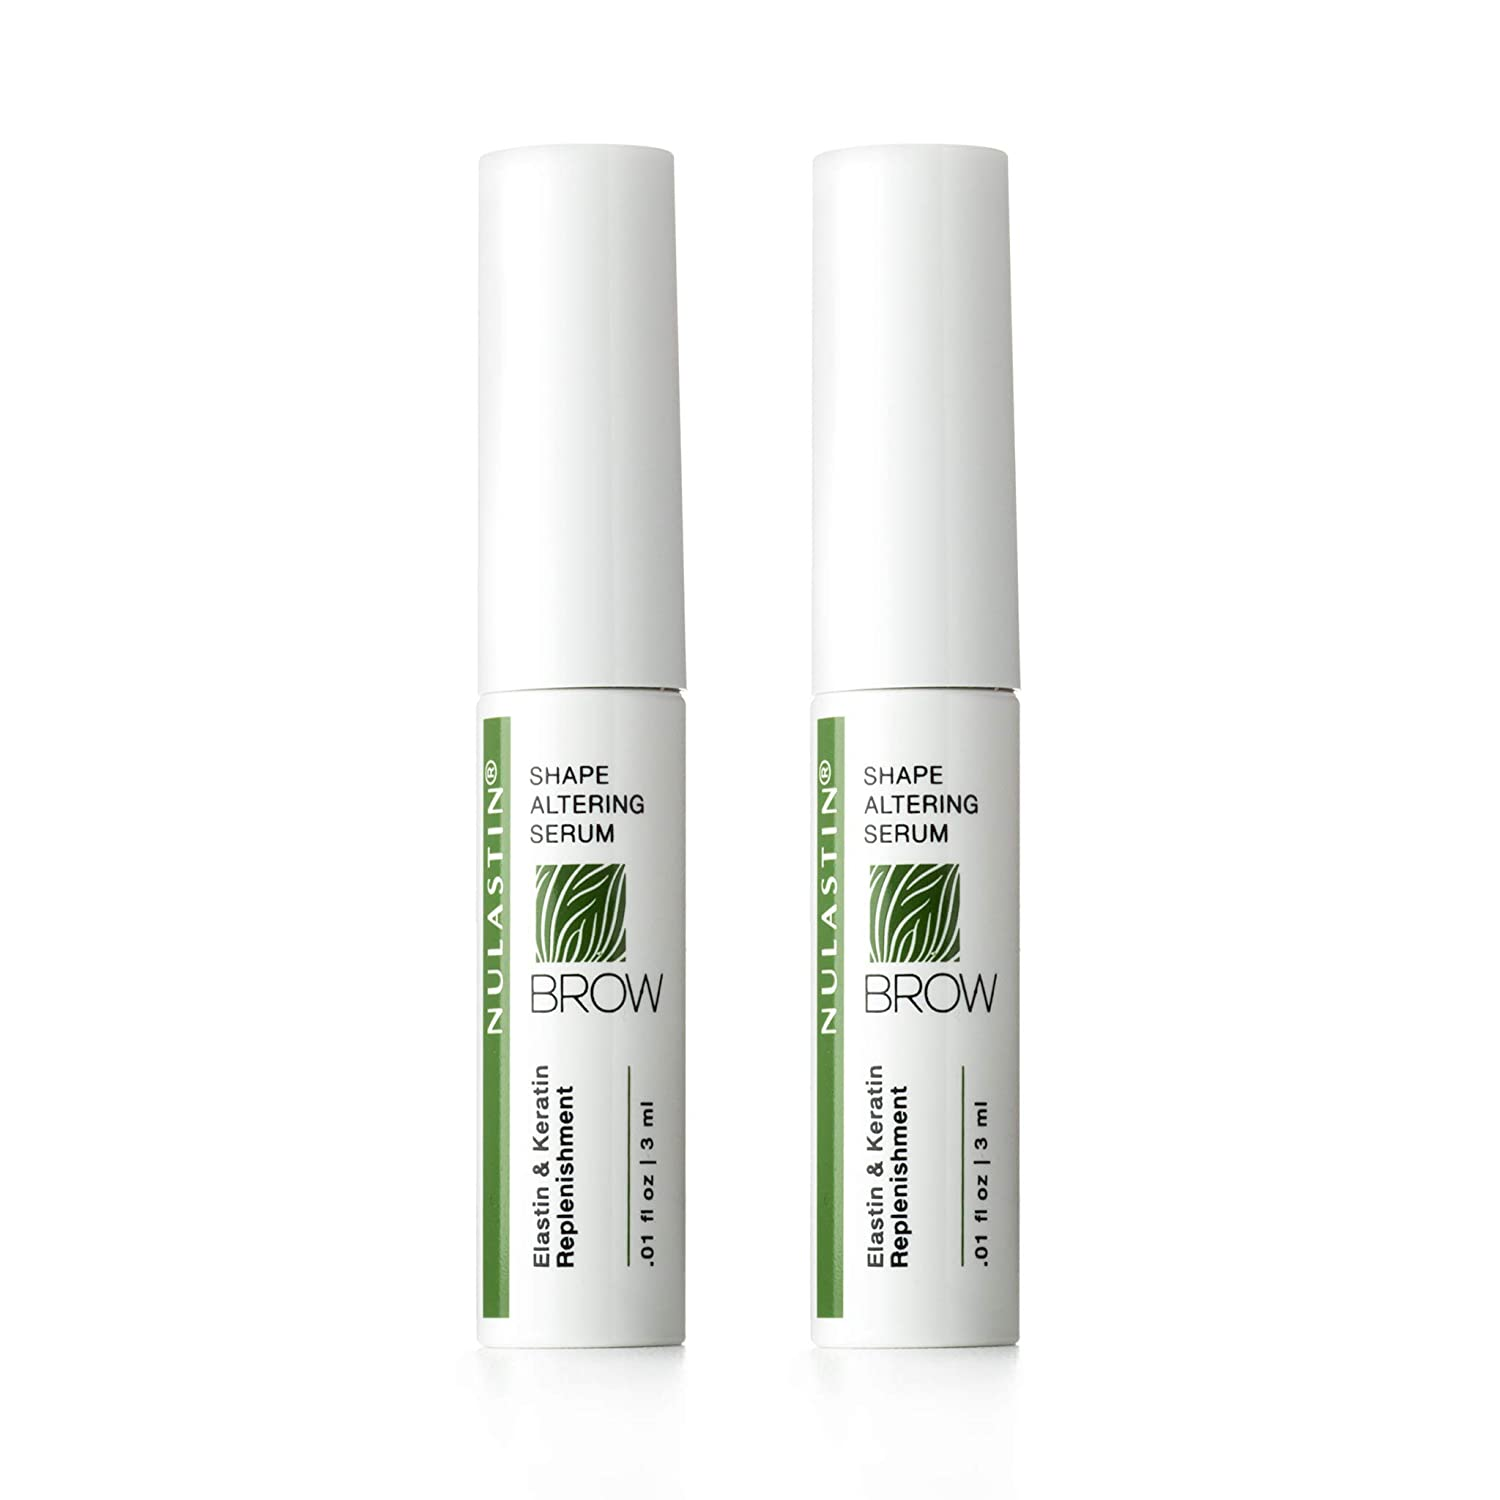 NULASTIN Outlet SALE - BROW 2-PACK online shop Keracyte Complex with Elastin